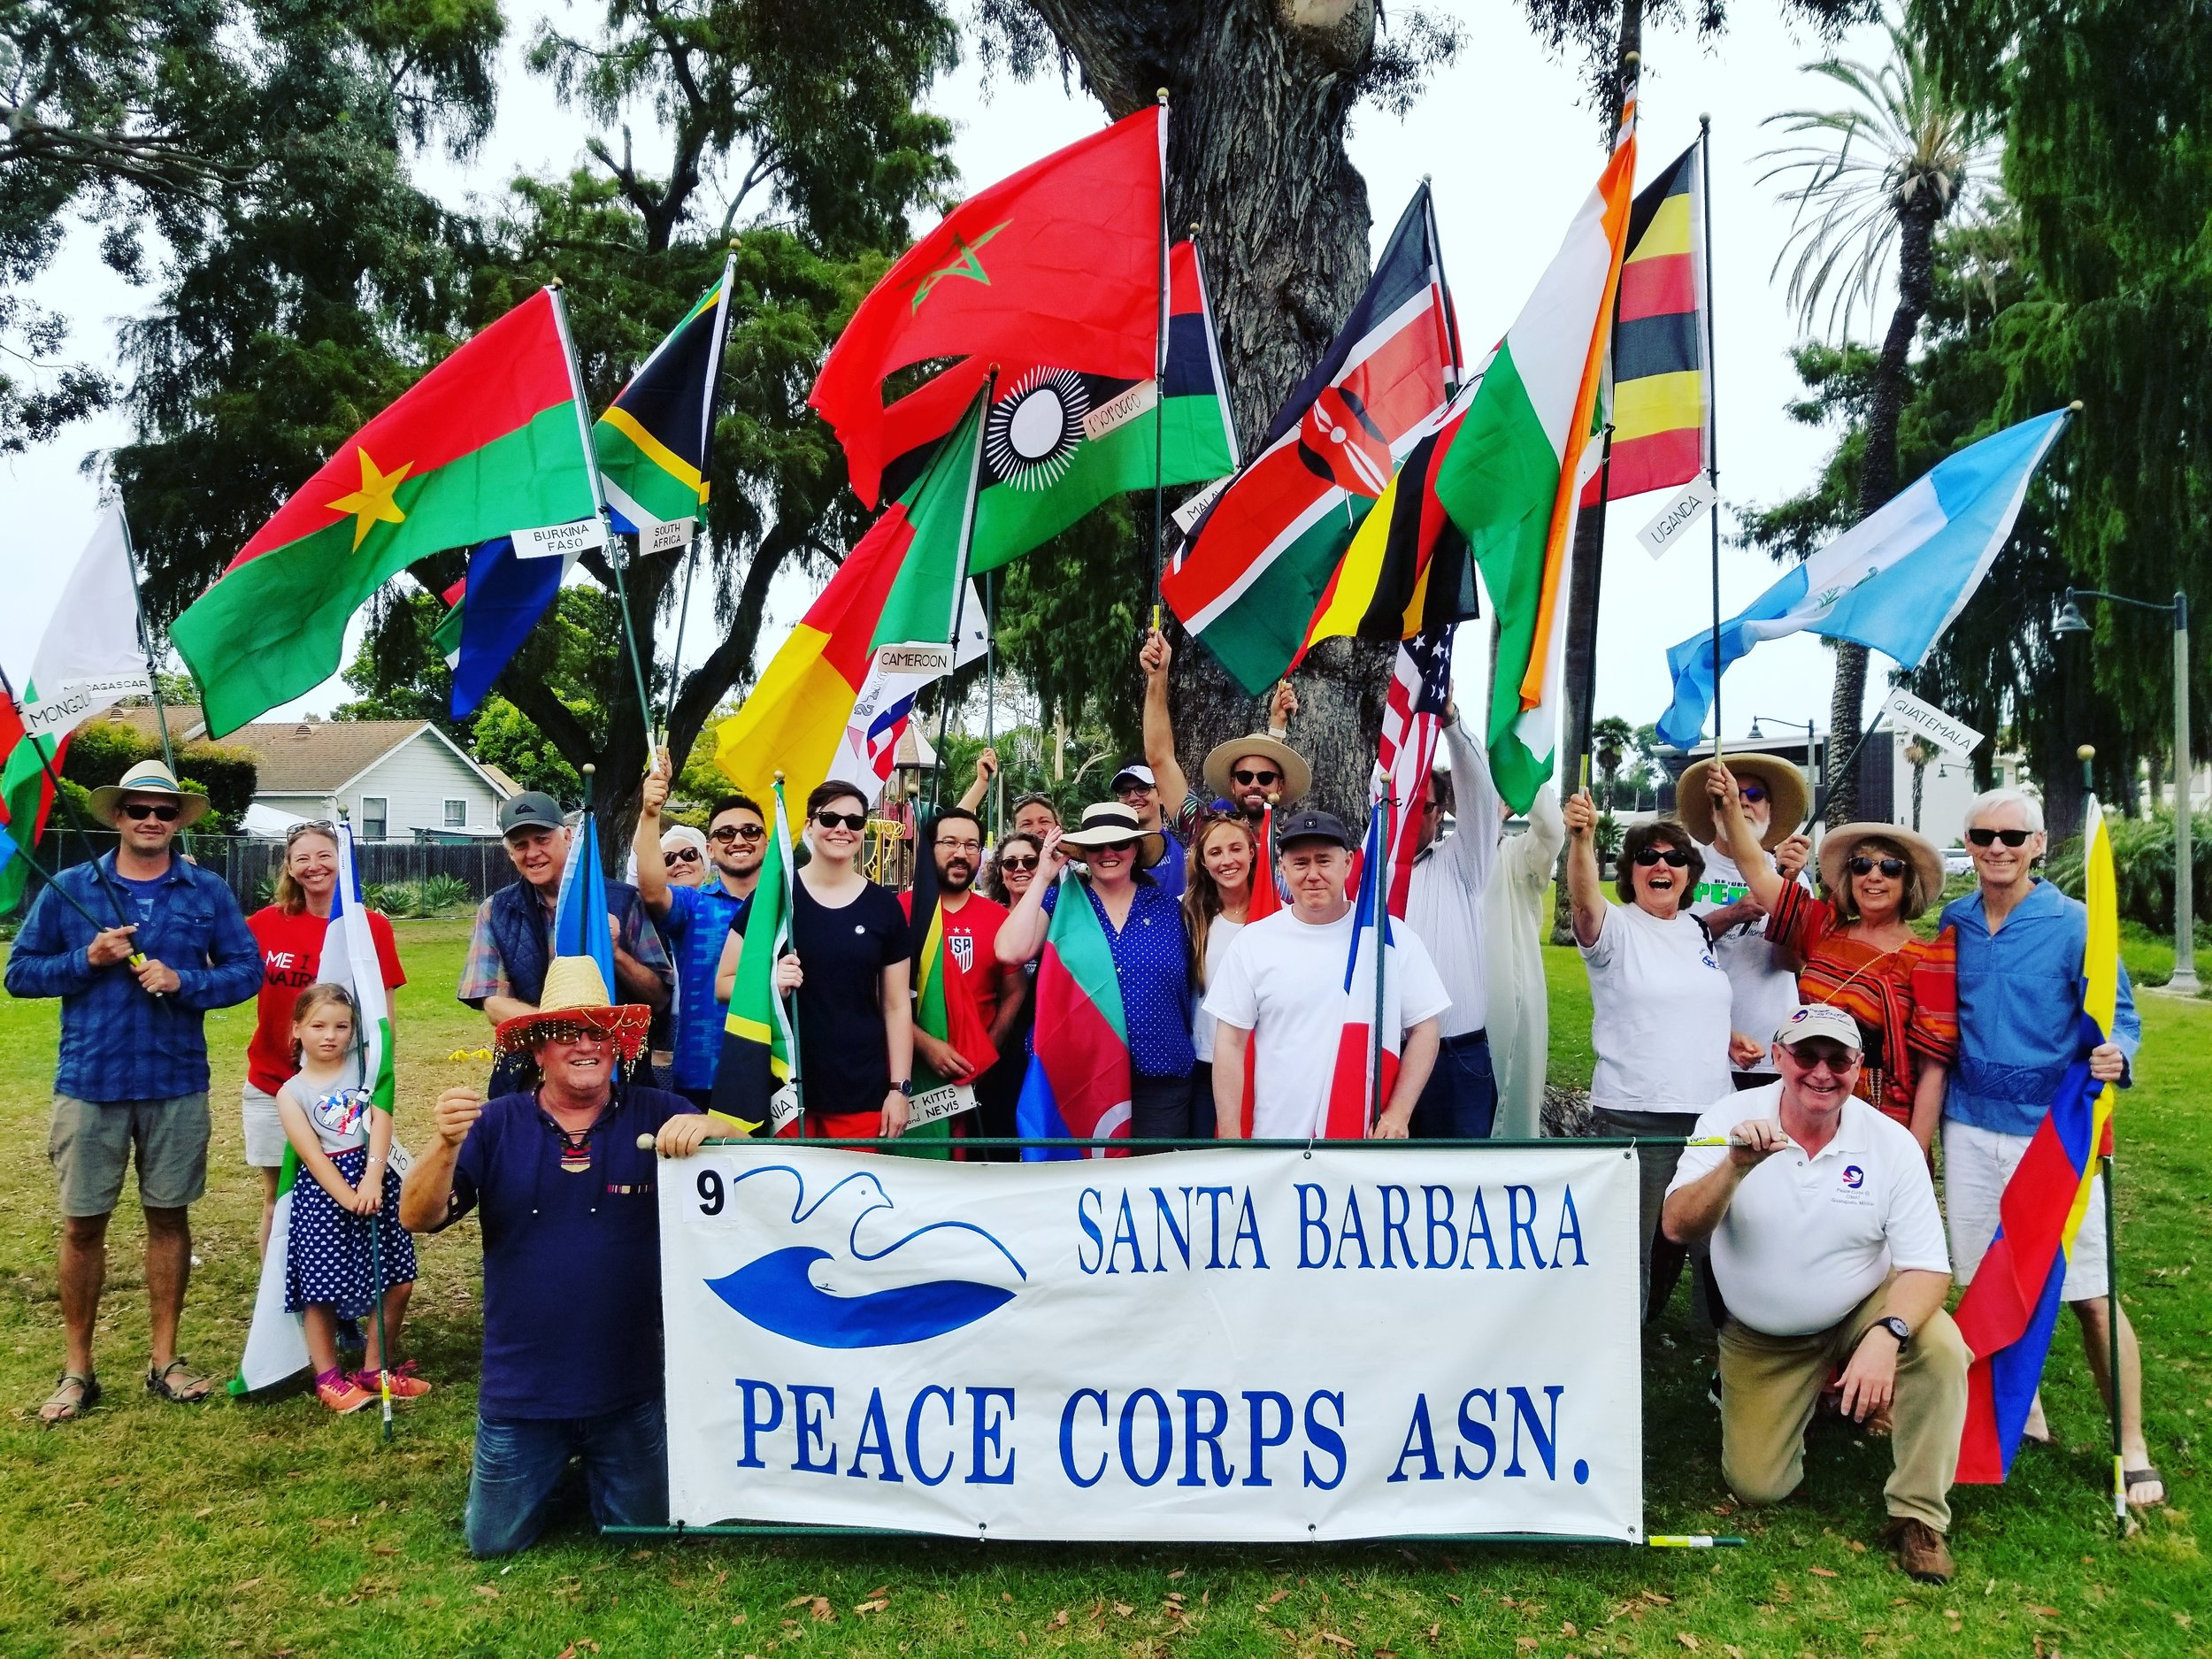 4th of July Parade & Lunch - THURSDAY, JULY 4, 20191:00pm Parade down State StreetThanks to all of you who came out to be a part of our mighty parade group! We walked proud representing the ideals of the Peace Corps and reminding people that the Peace Corps is still active and an important and positive part of our country's global connection and legacy. And what an awesome and colorful group we were!We even got mentioned in Noozhawk's article about the parade!We also want to give a big plug for the Rose Cafe on Haley Street. Owner George Guevara and his staff went above and beyond for us when our original lunch plans fell through after the parade. We called the Rose Cafe to see if they could accommodate our large group. They said unfortunately, they had just cleaned the kitchen and closed. But minutes later George used his caller ID and called us back to say if we still wanted to come, they'd re-open the kitchen and restaurant just for us — and they did! We had a great lunch with wonderful service. Rose Cafe and George Guevara for the win!